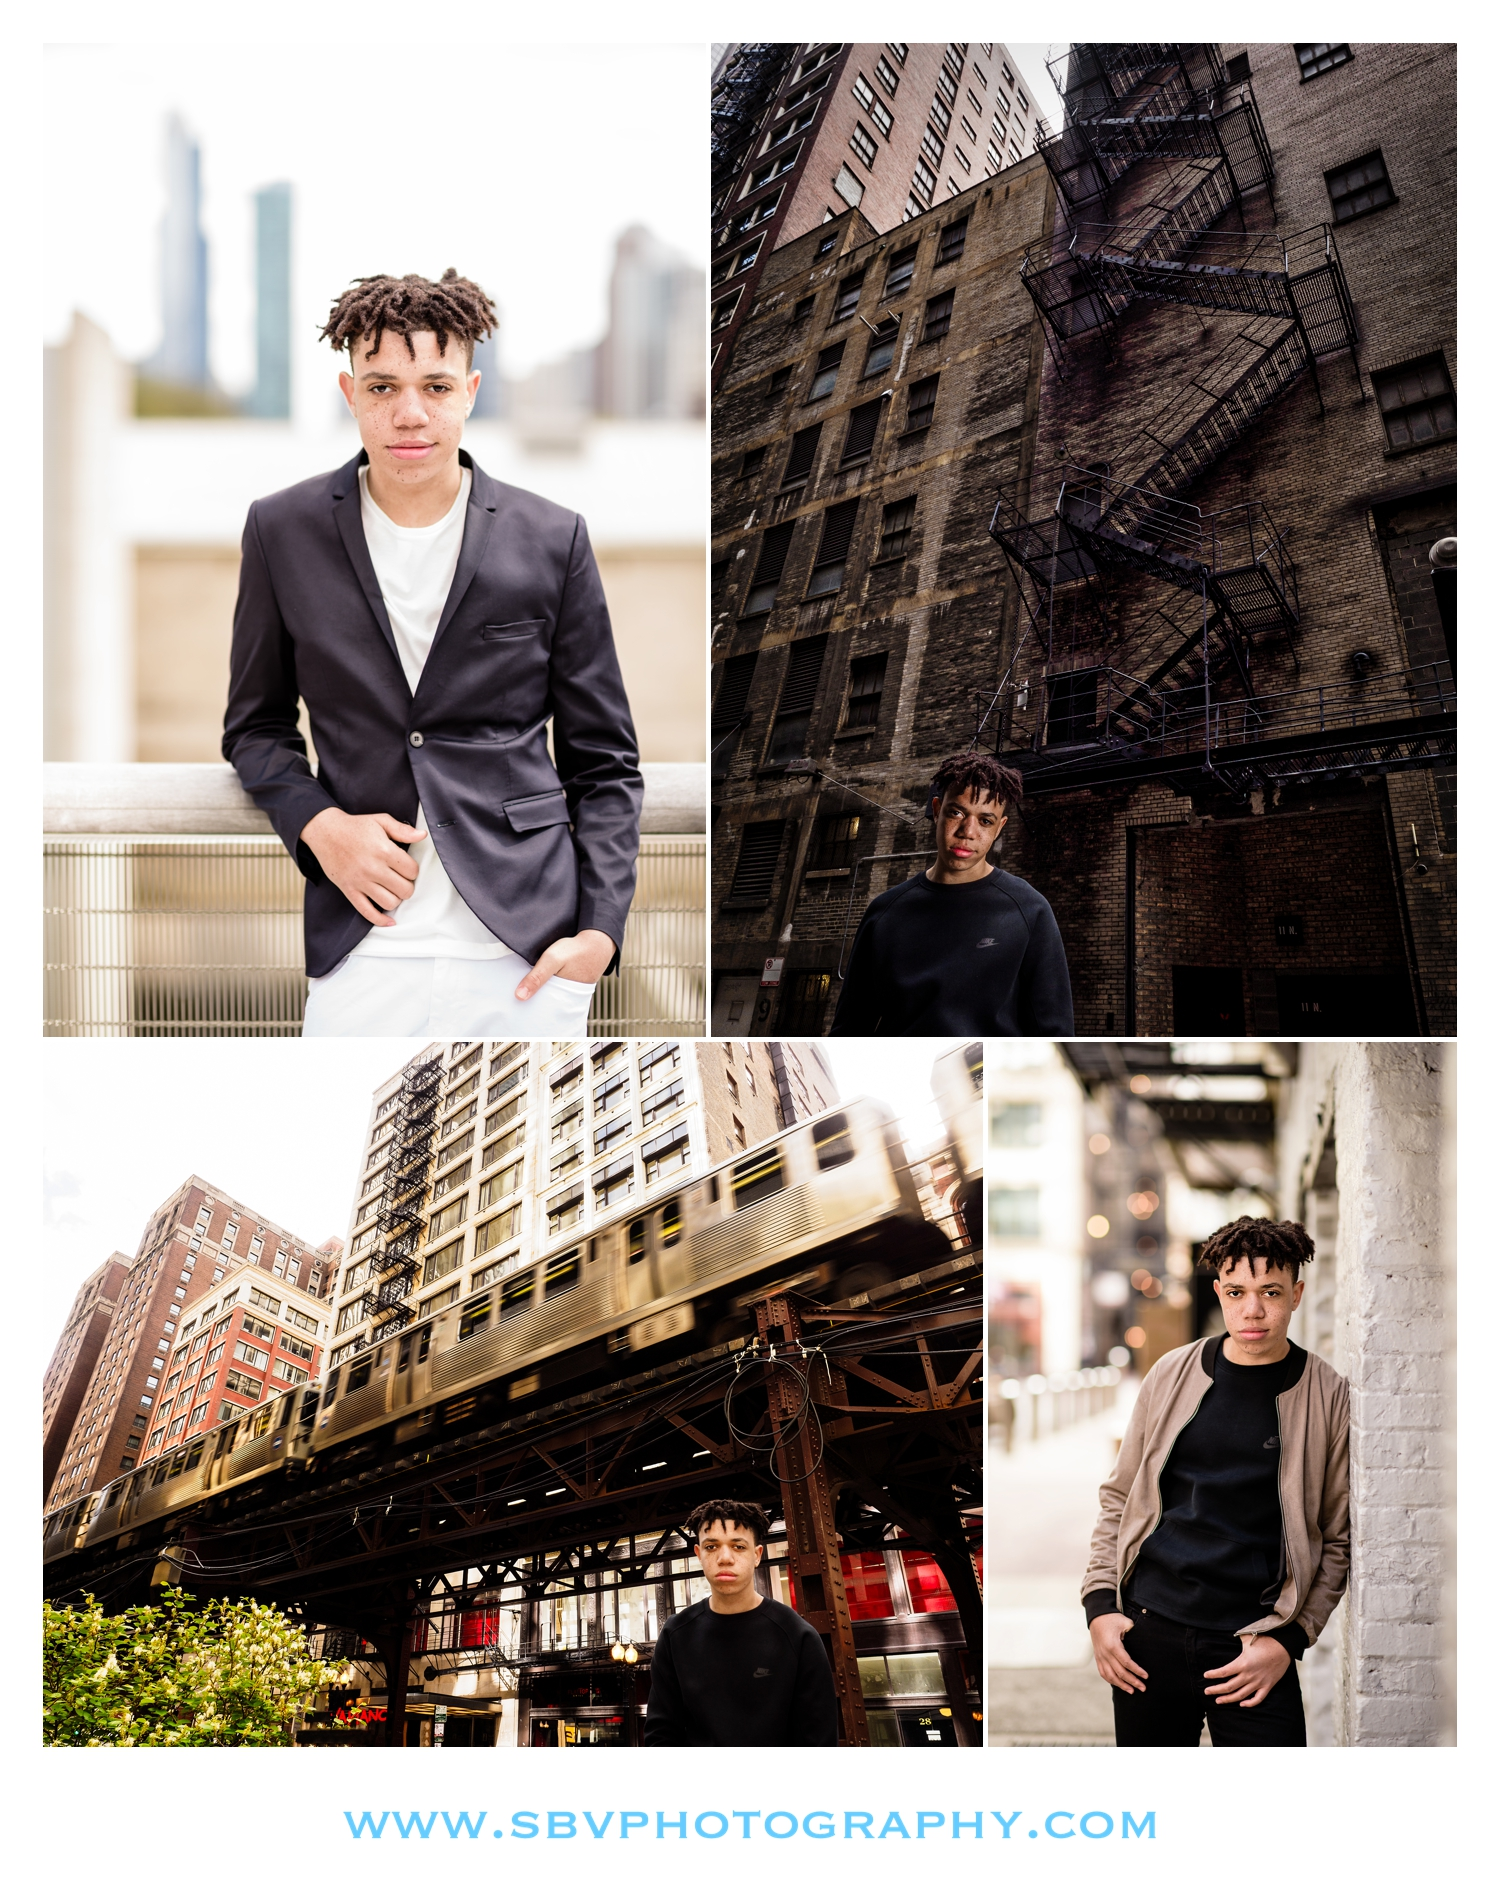 A high school senior poses around the city of Chicago for urban themed senior pictures.